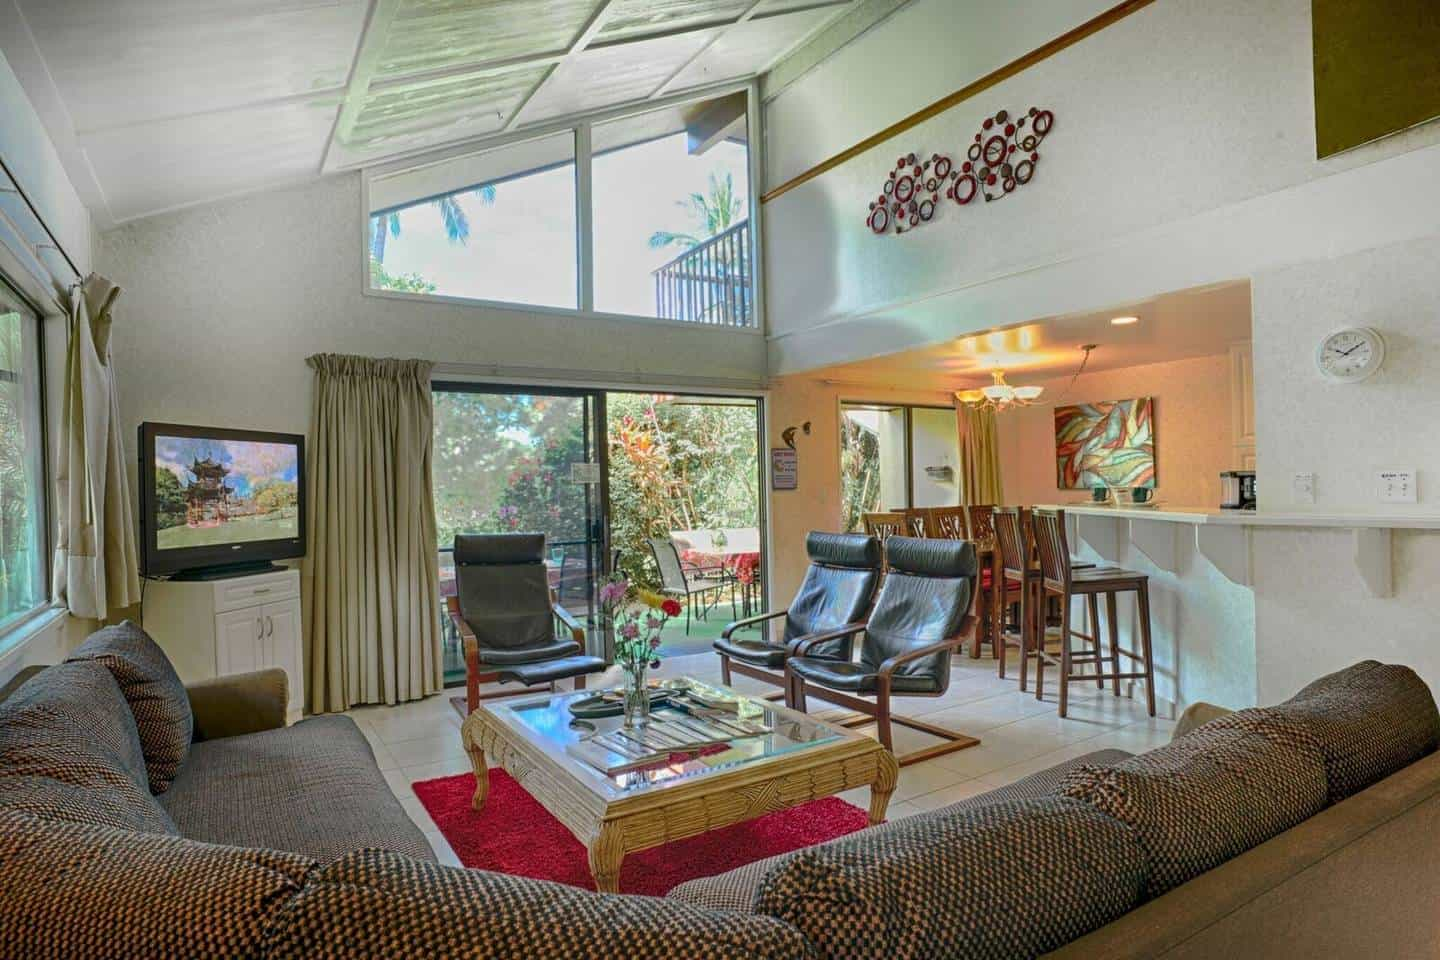 Best AirBNB Kihei for 10 Guests (Budget Option)